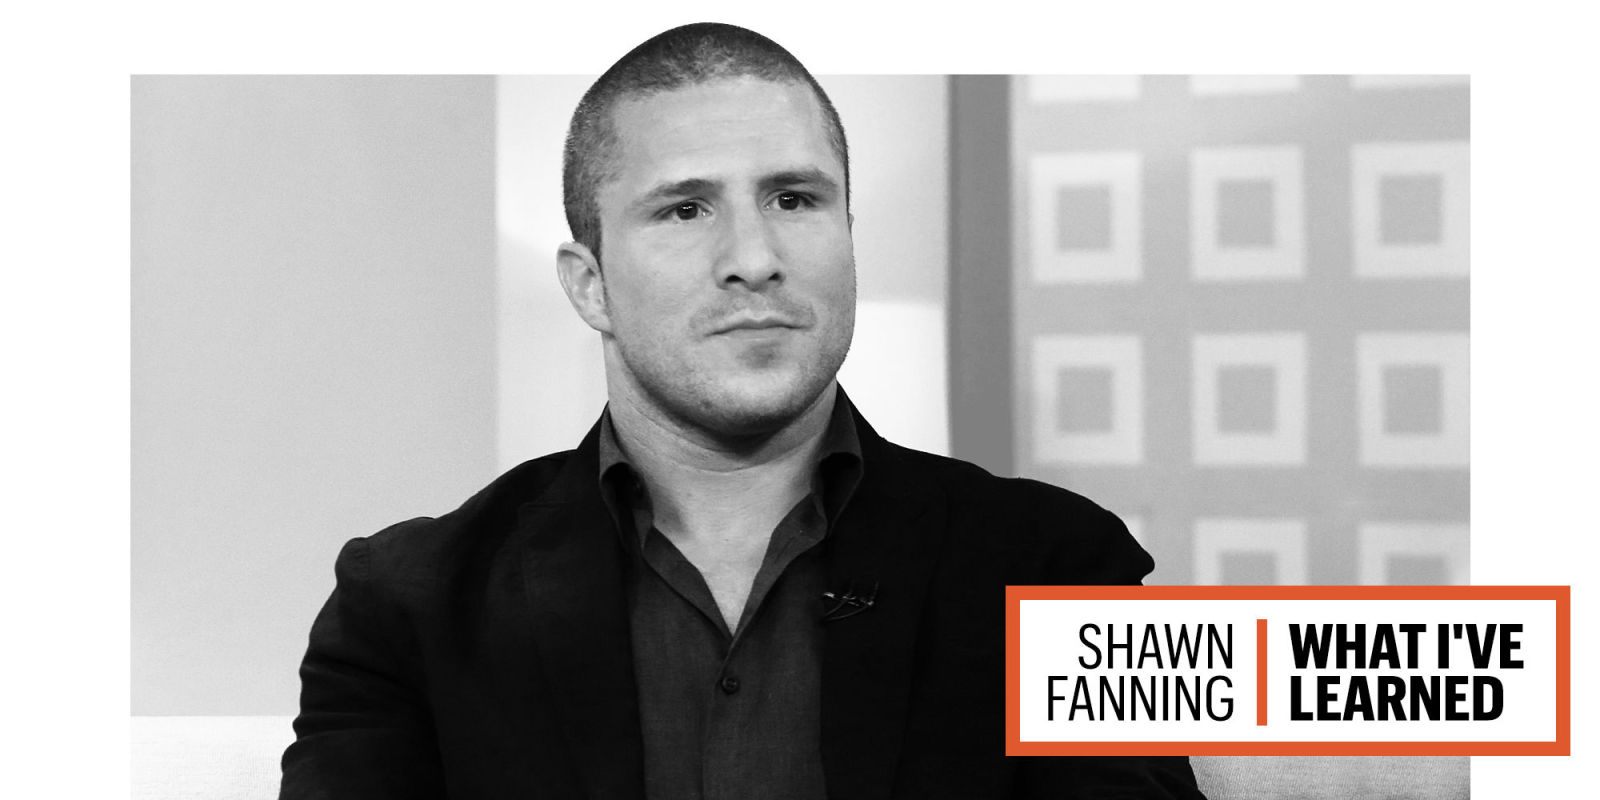 the life of shawn fanning The popularity of napster was widespread and fanning was featured on the cover of time magazinethe site in its initial free p2p incarnation was shut down in 2001 after the company's unsuccessful appeal of court orders arising from its encouraging the illegal sharing and downloading.